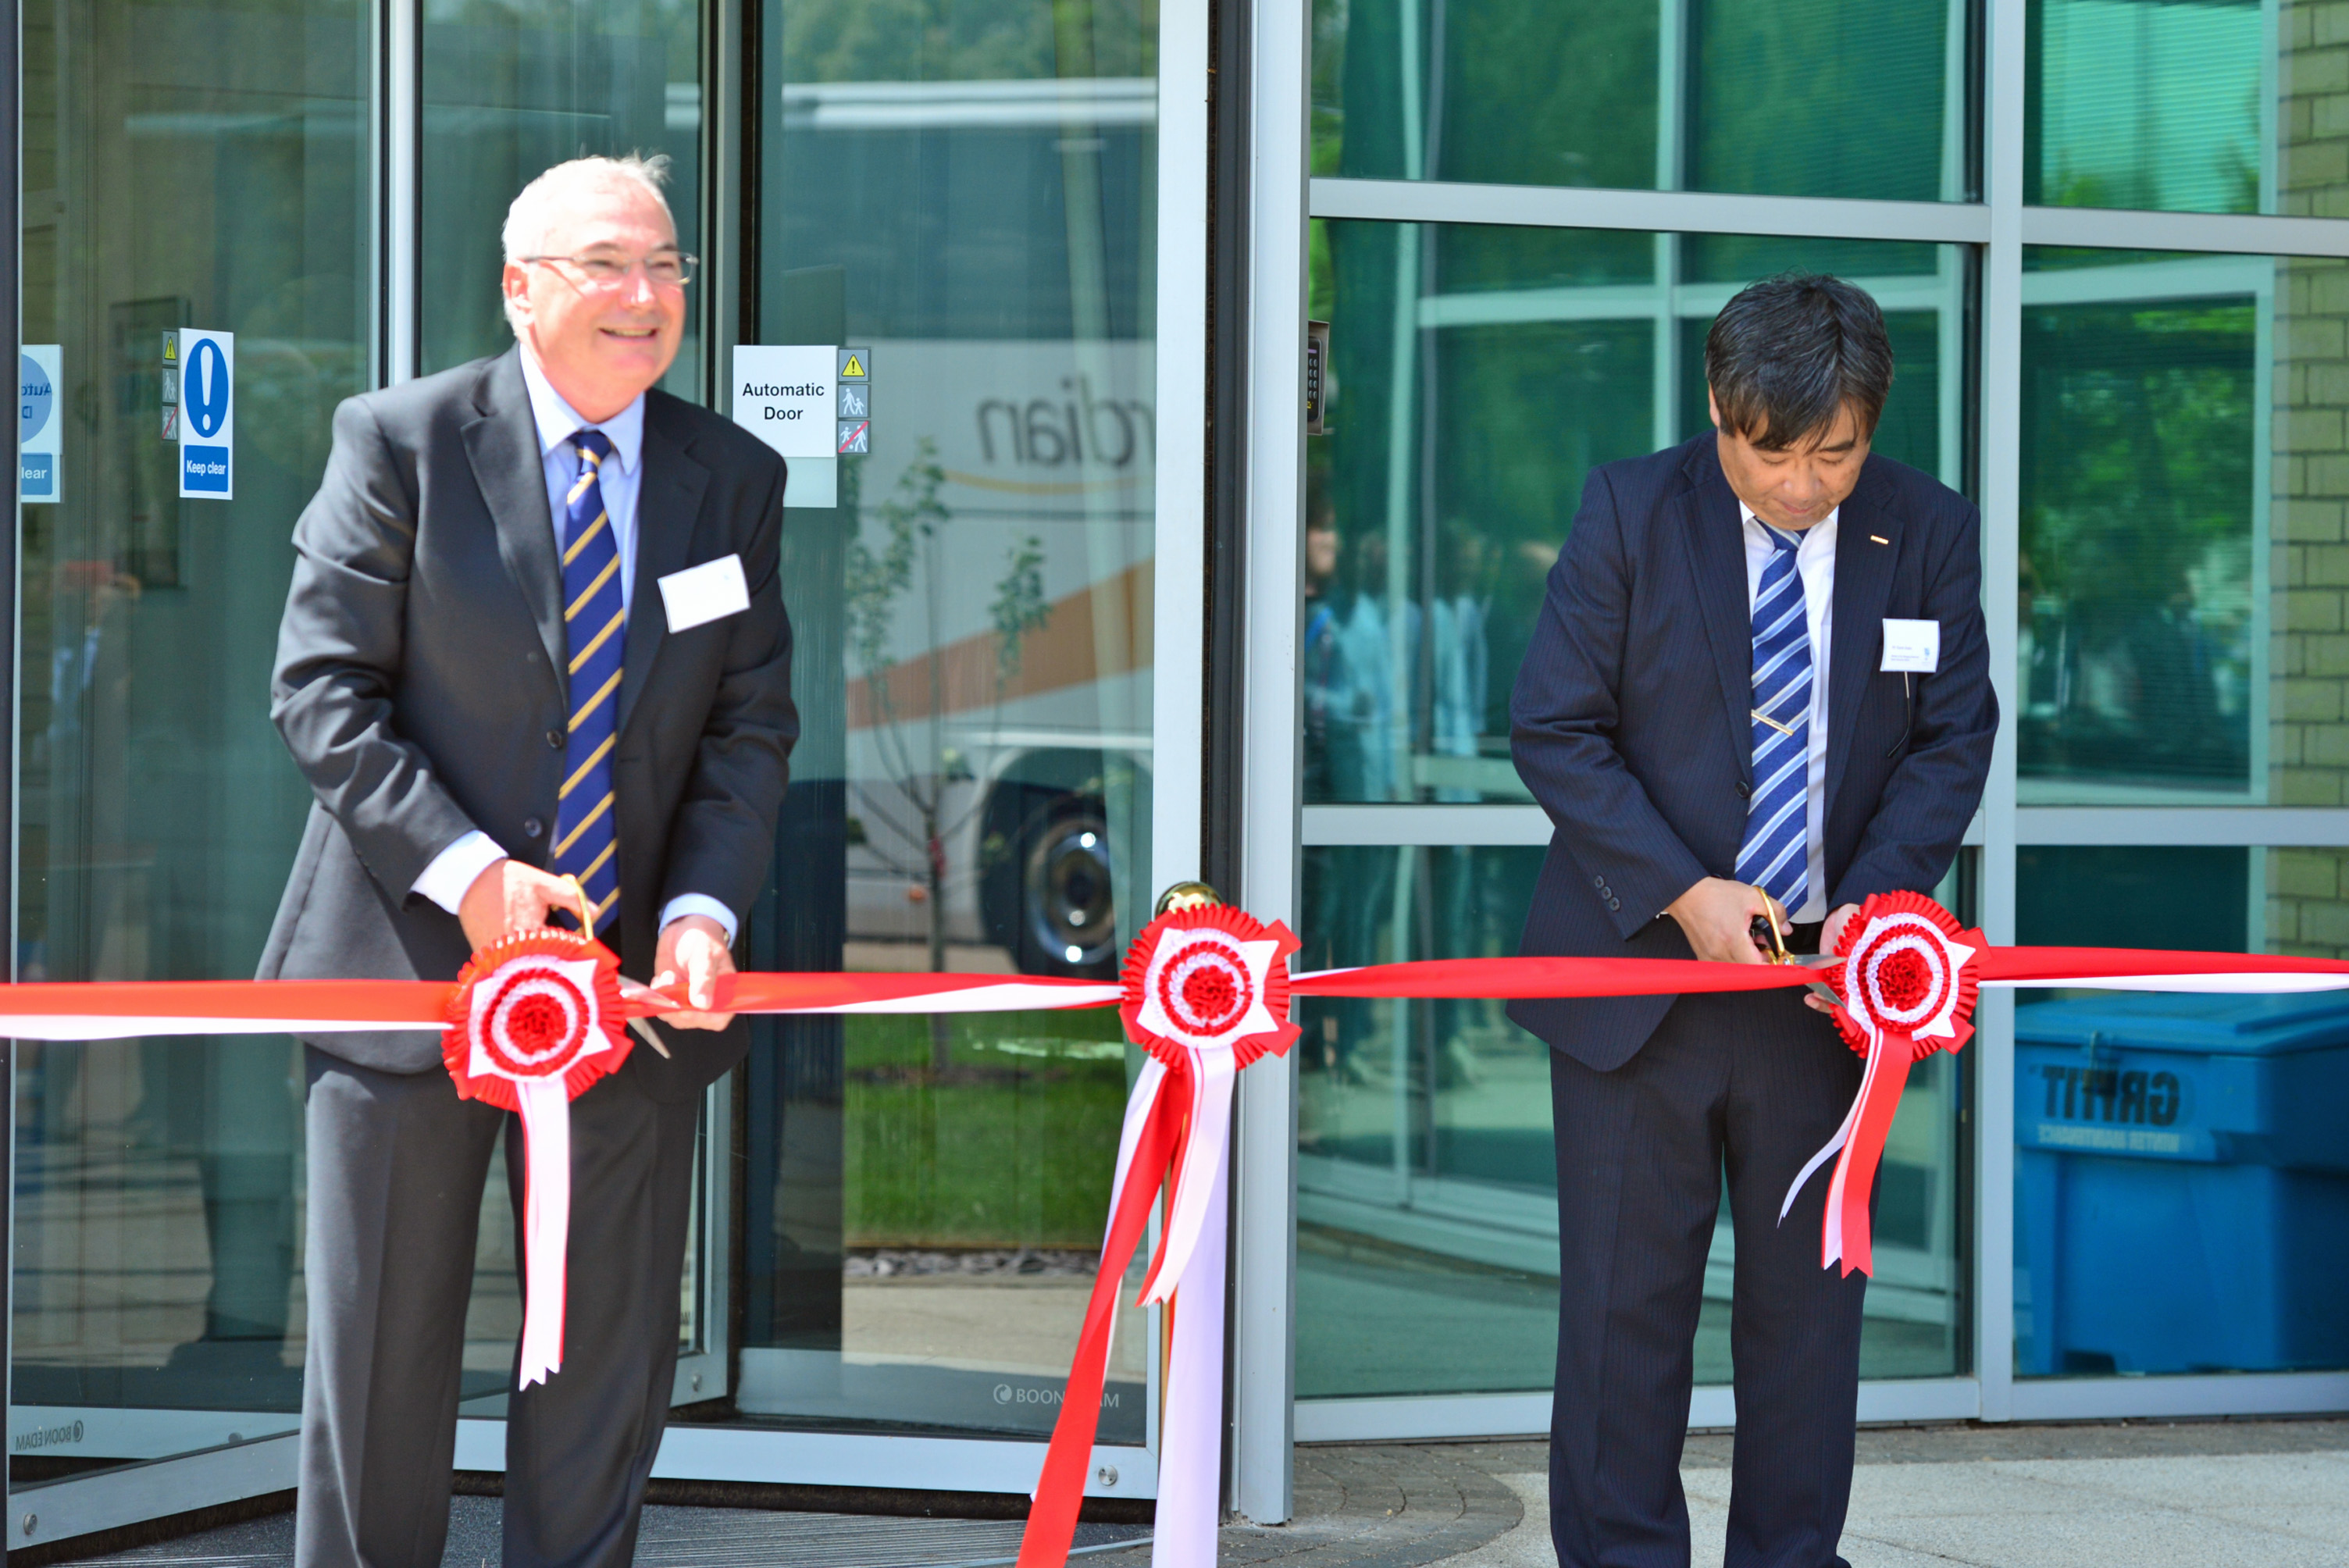 OGT celebrates opening of new Cambridge site